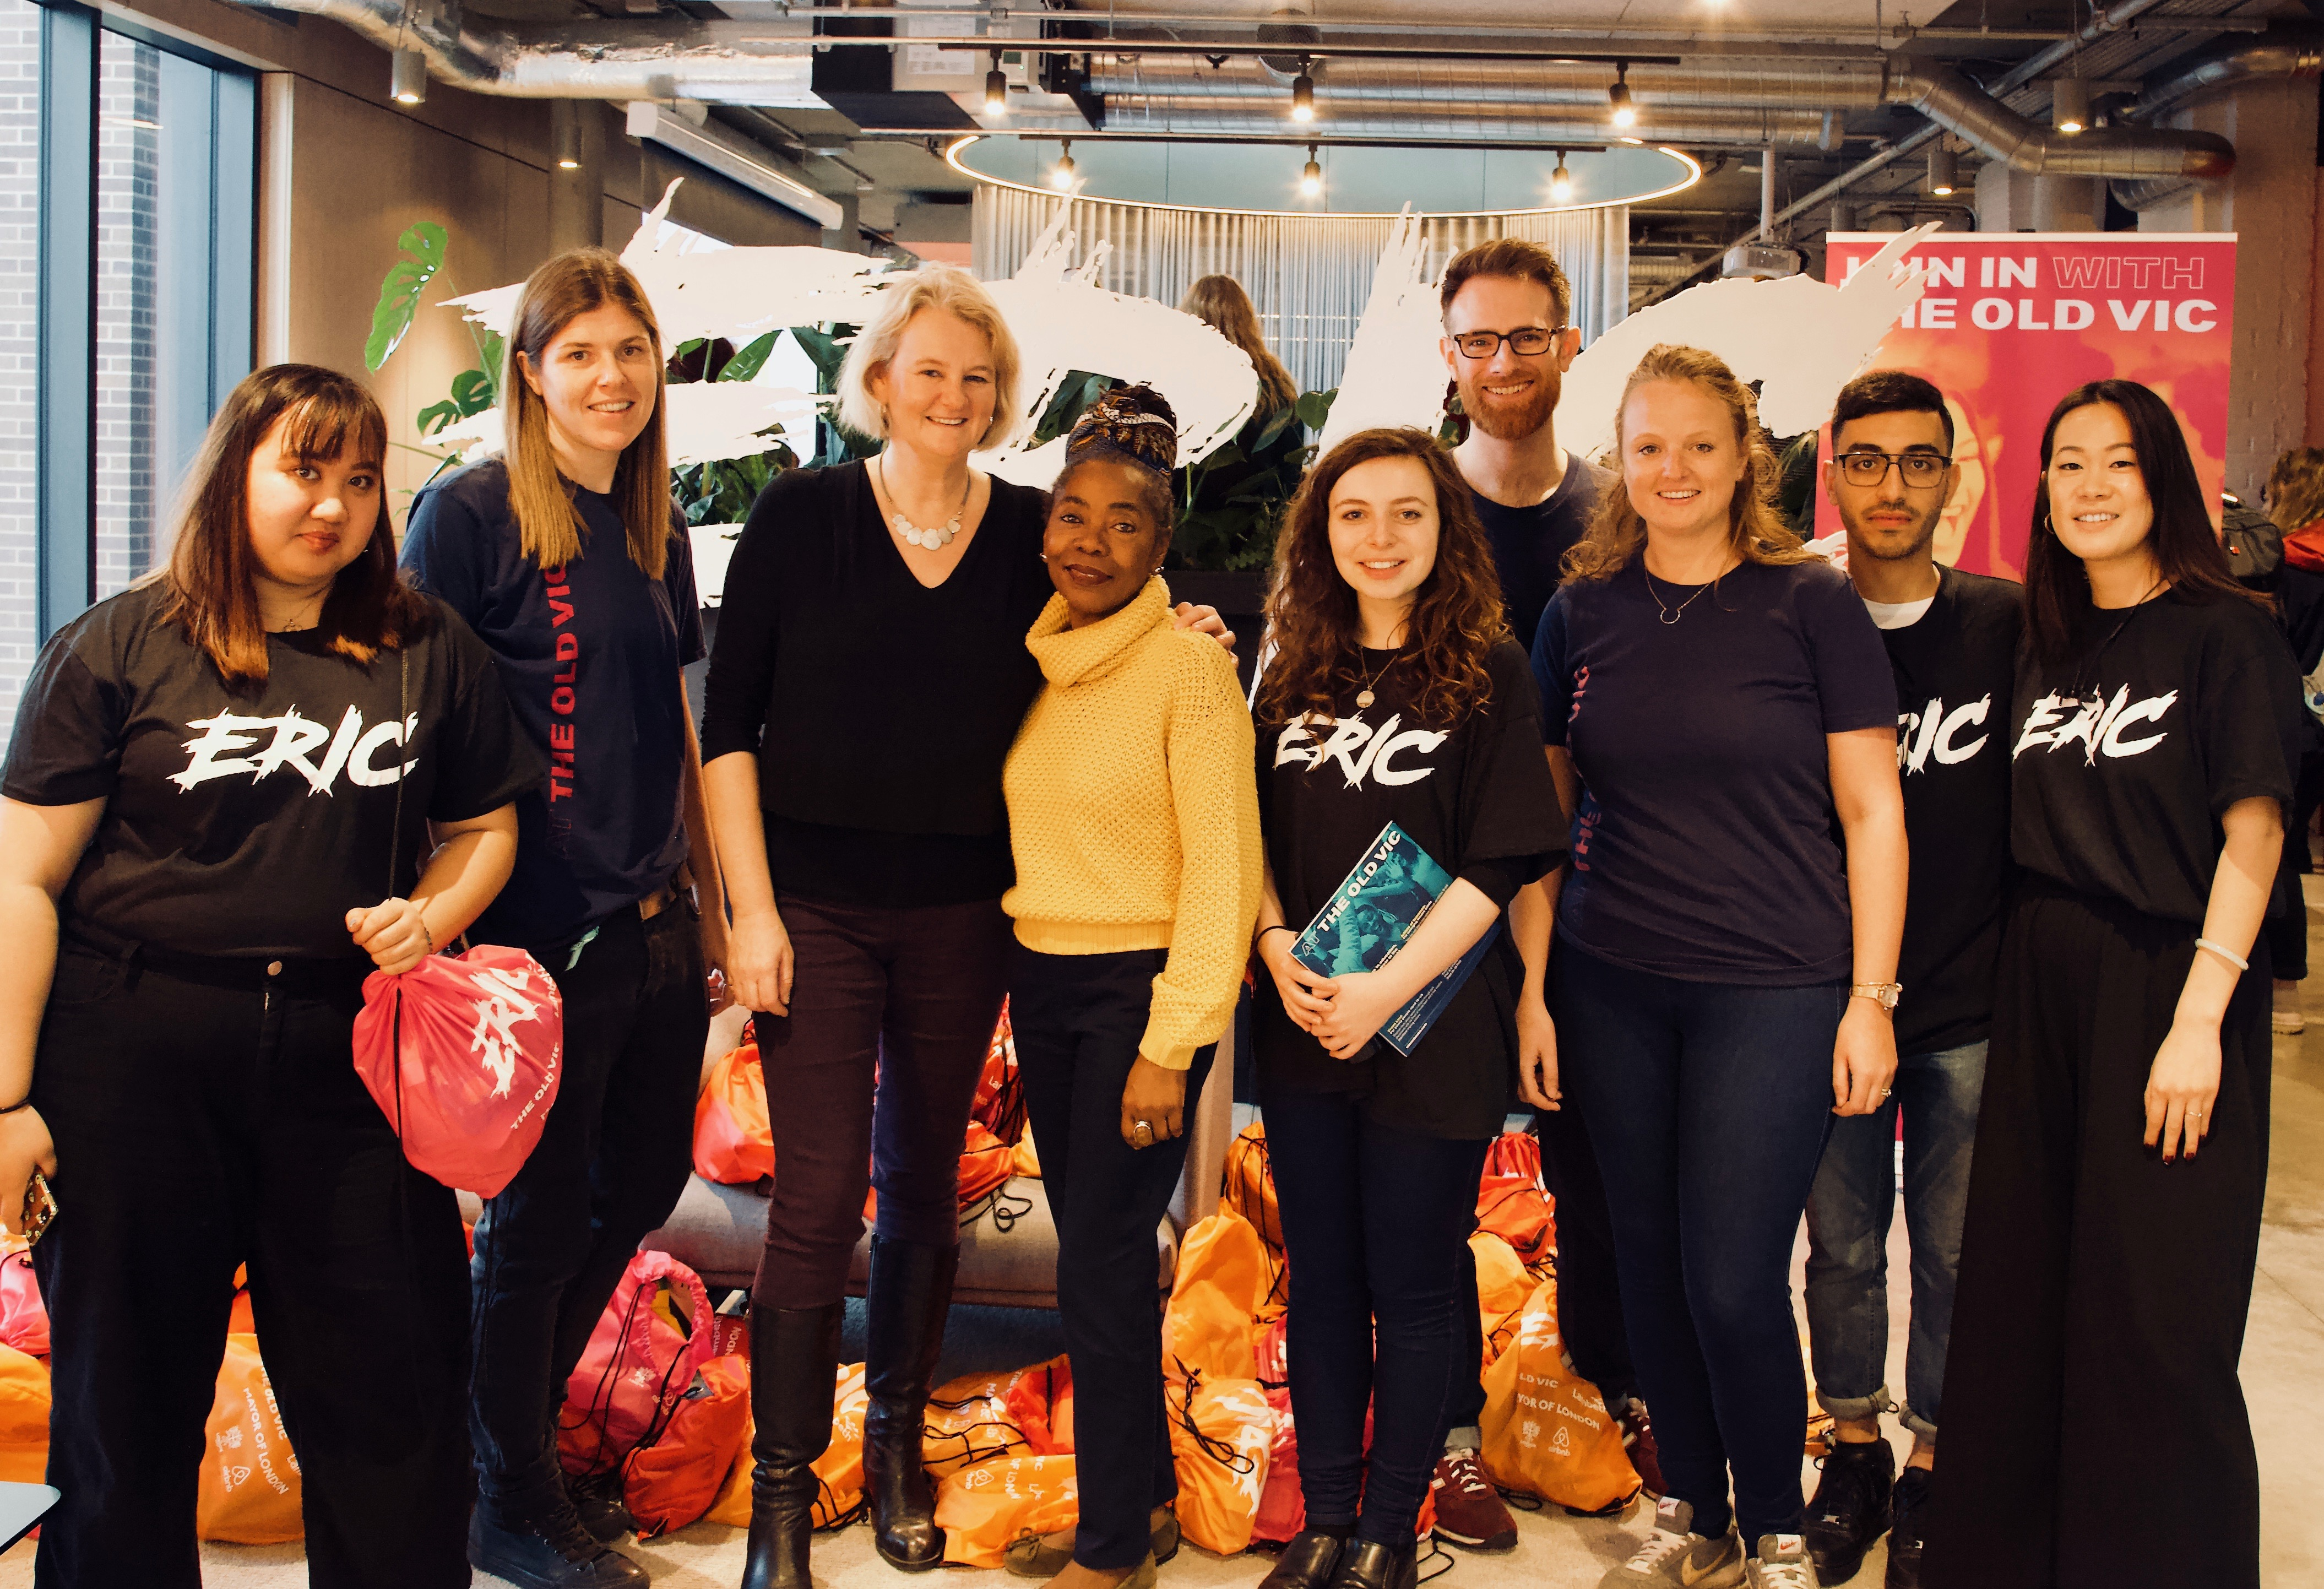 Photo: Cllr Lib Peck (Leader of the Council) and Cllr Sonia Winifred (Cabinet Member for Equalities and Culture) with the team from ERIC and The Old Vic.